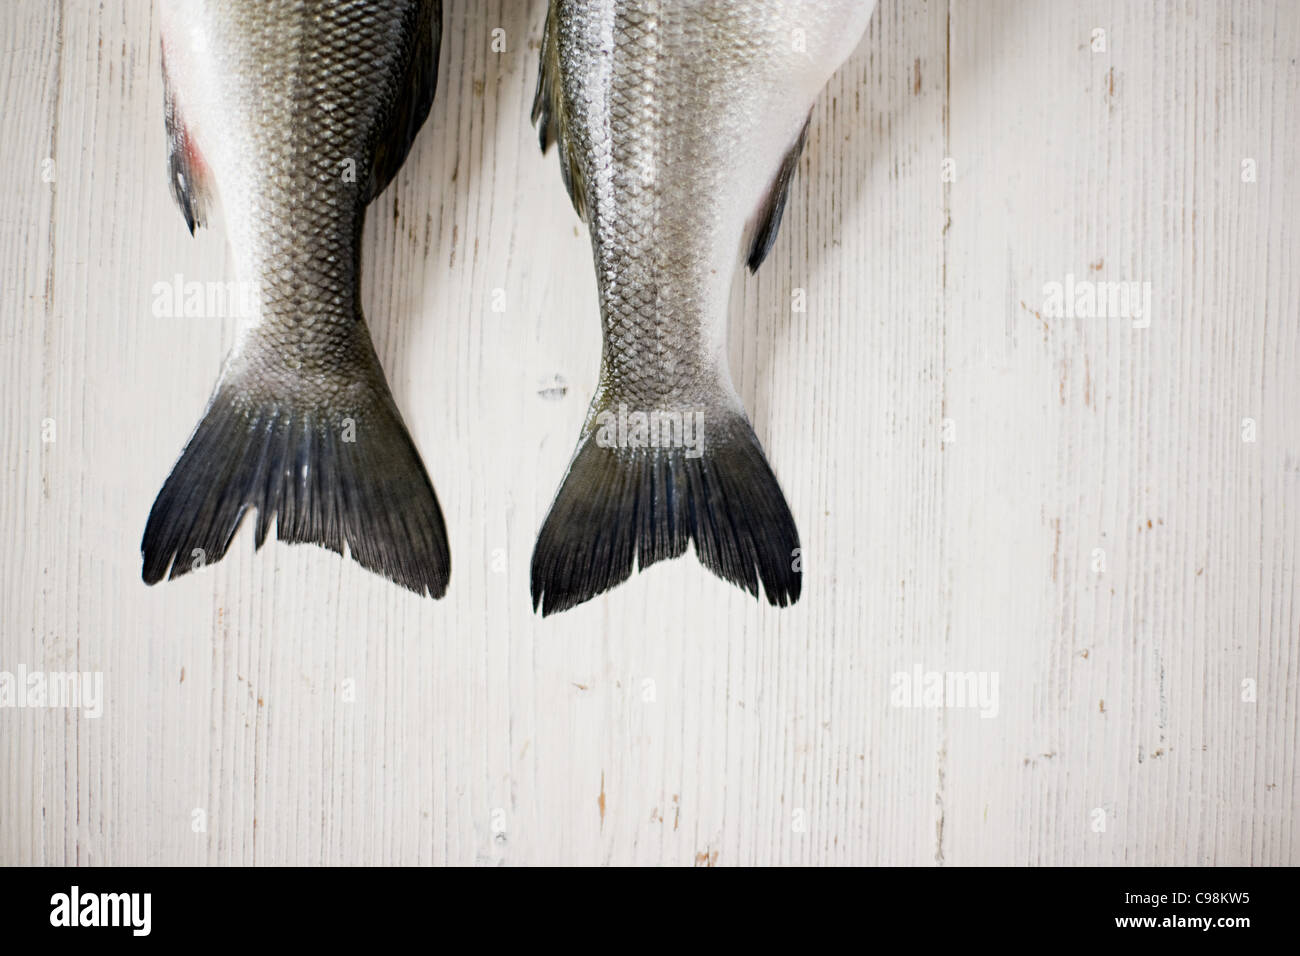 The tails two fish side by side - Stock Image